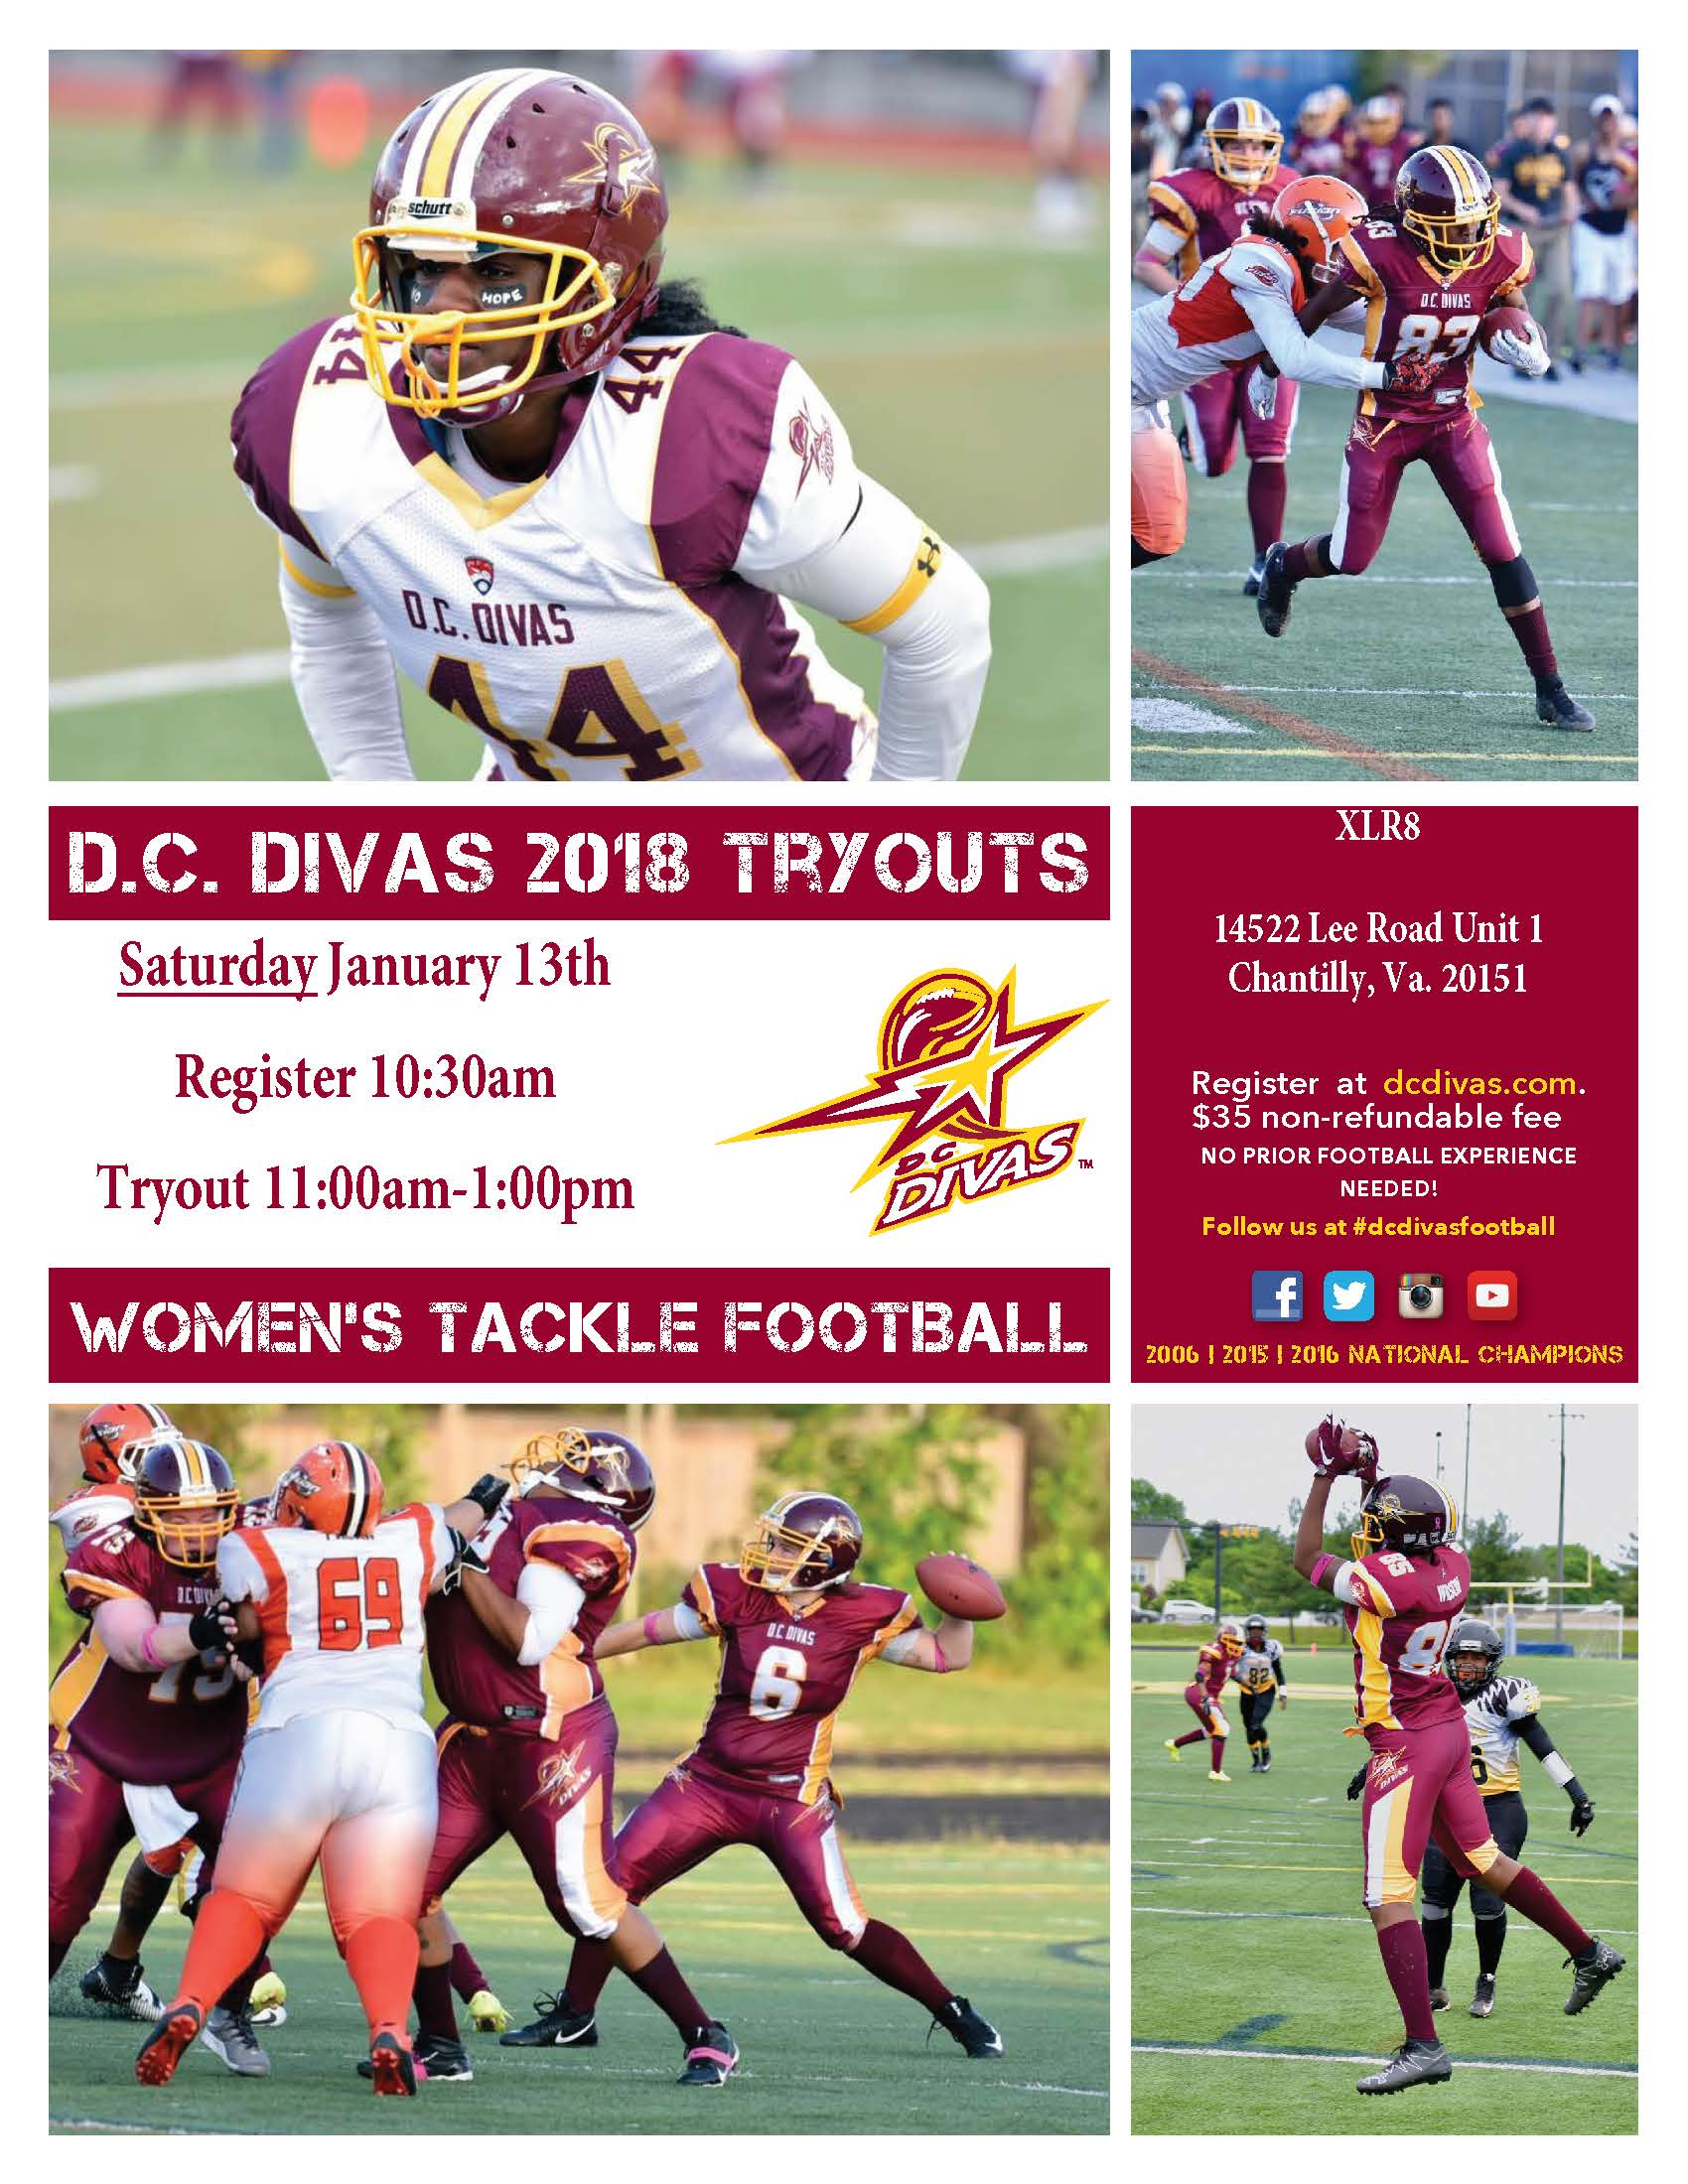 D.C. Divas 2018 Tryout Dates and Locations